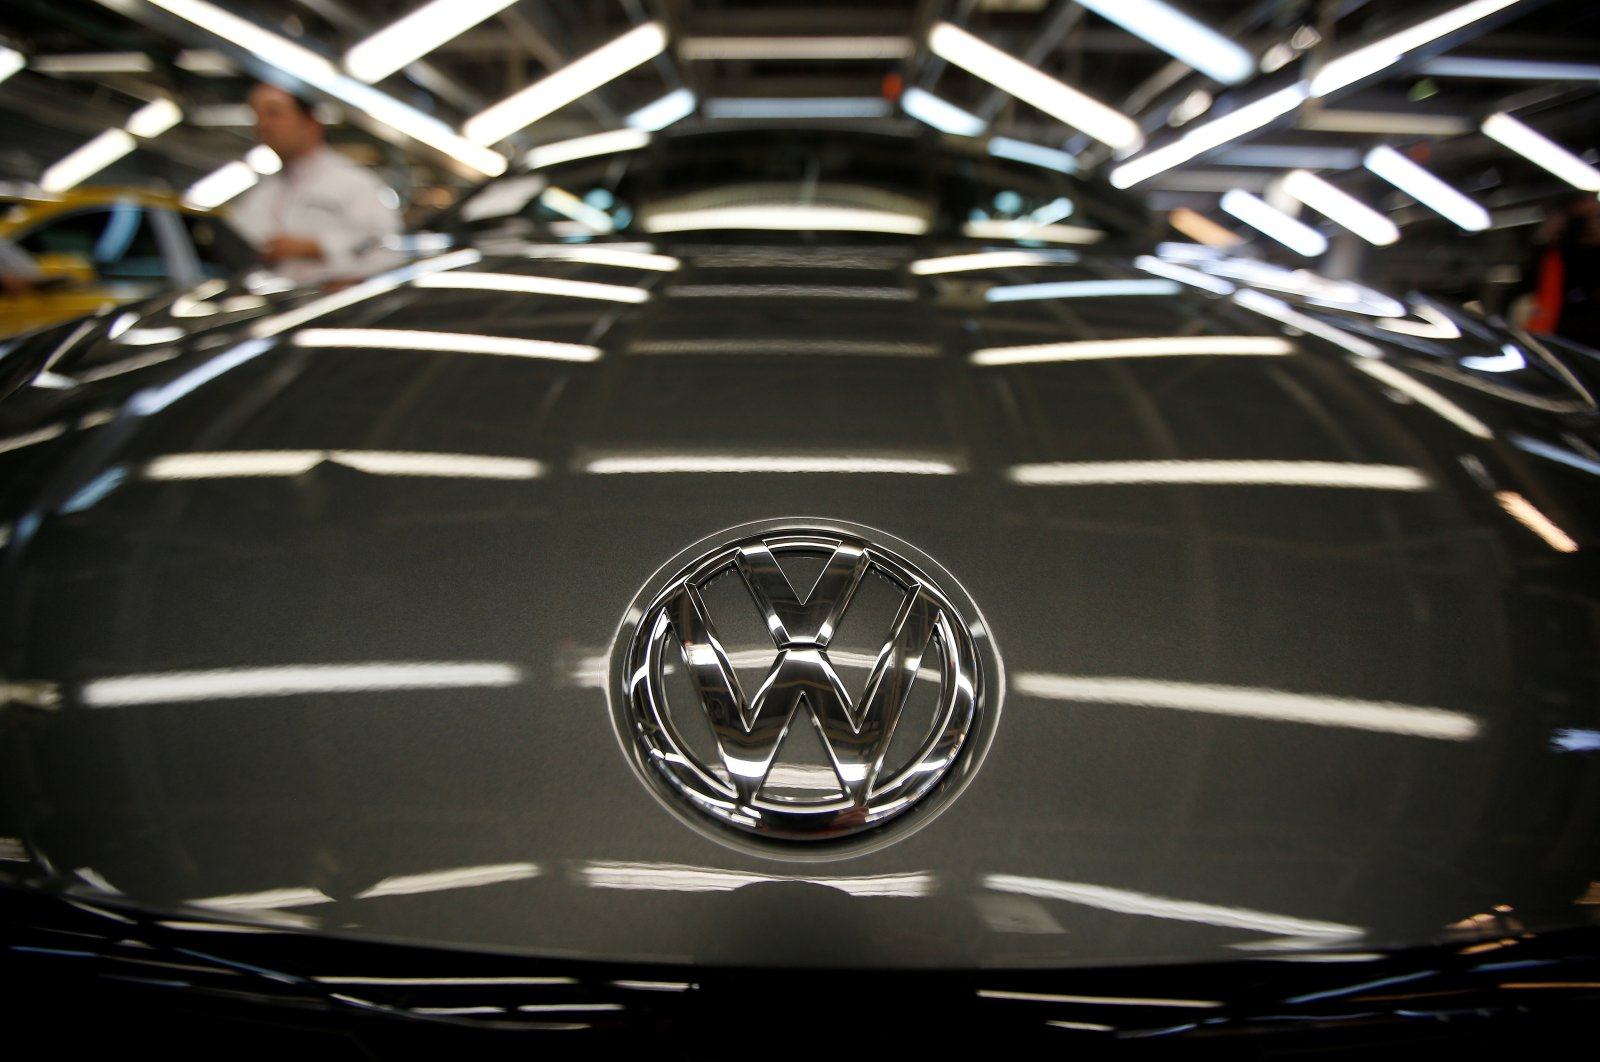 Volkswagen's logo is seen on a car on an assembly line at the carmaker's factory in Palmela, Portugal, Dec. 9, 2016. (Reuters Photo)